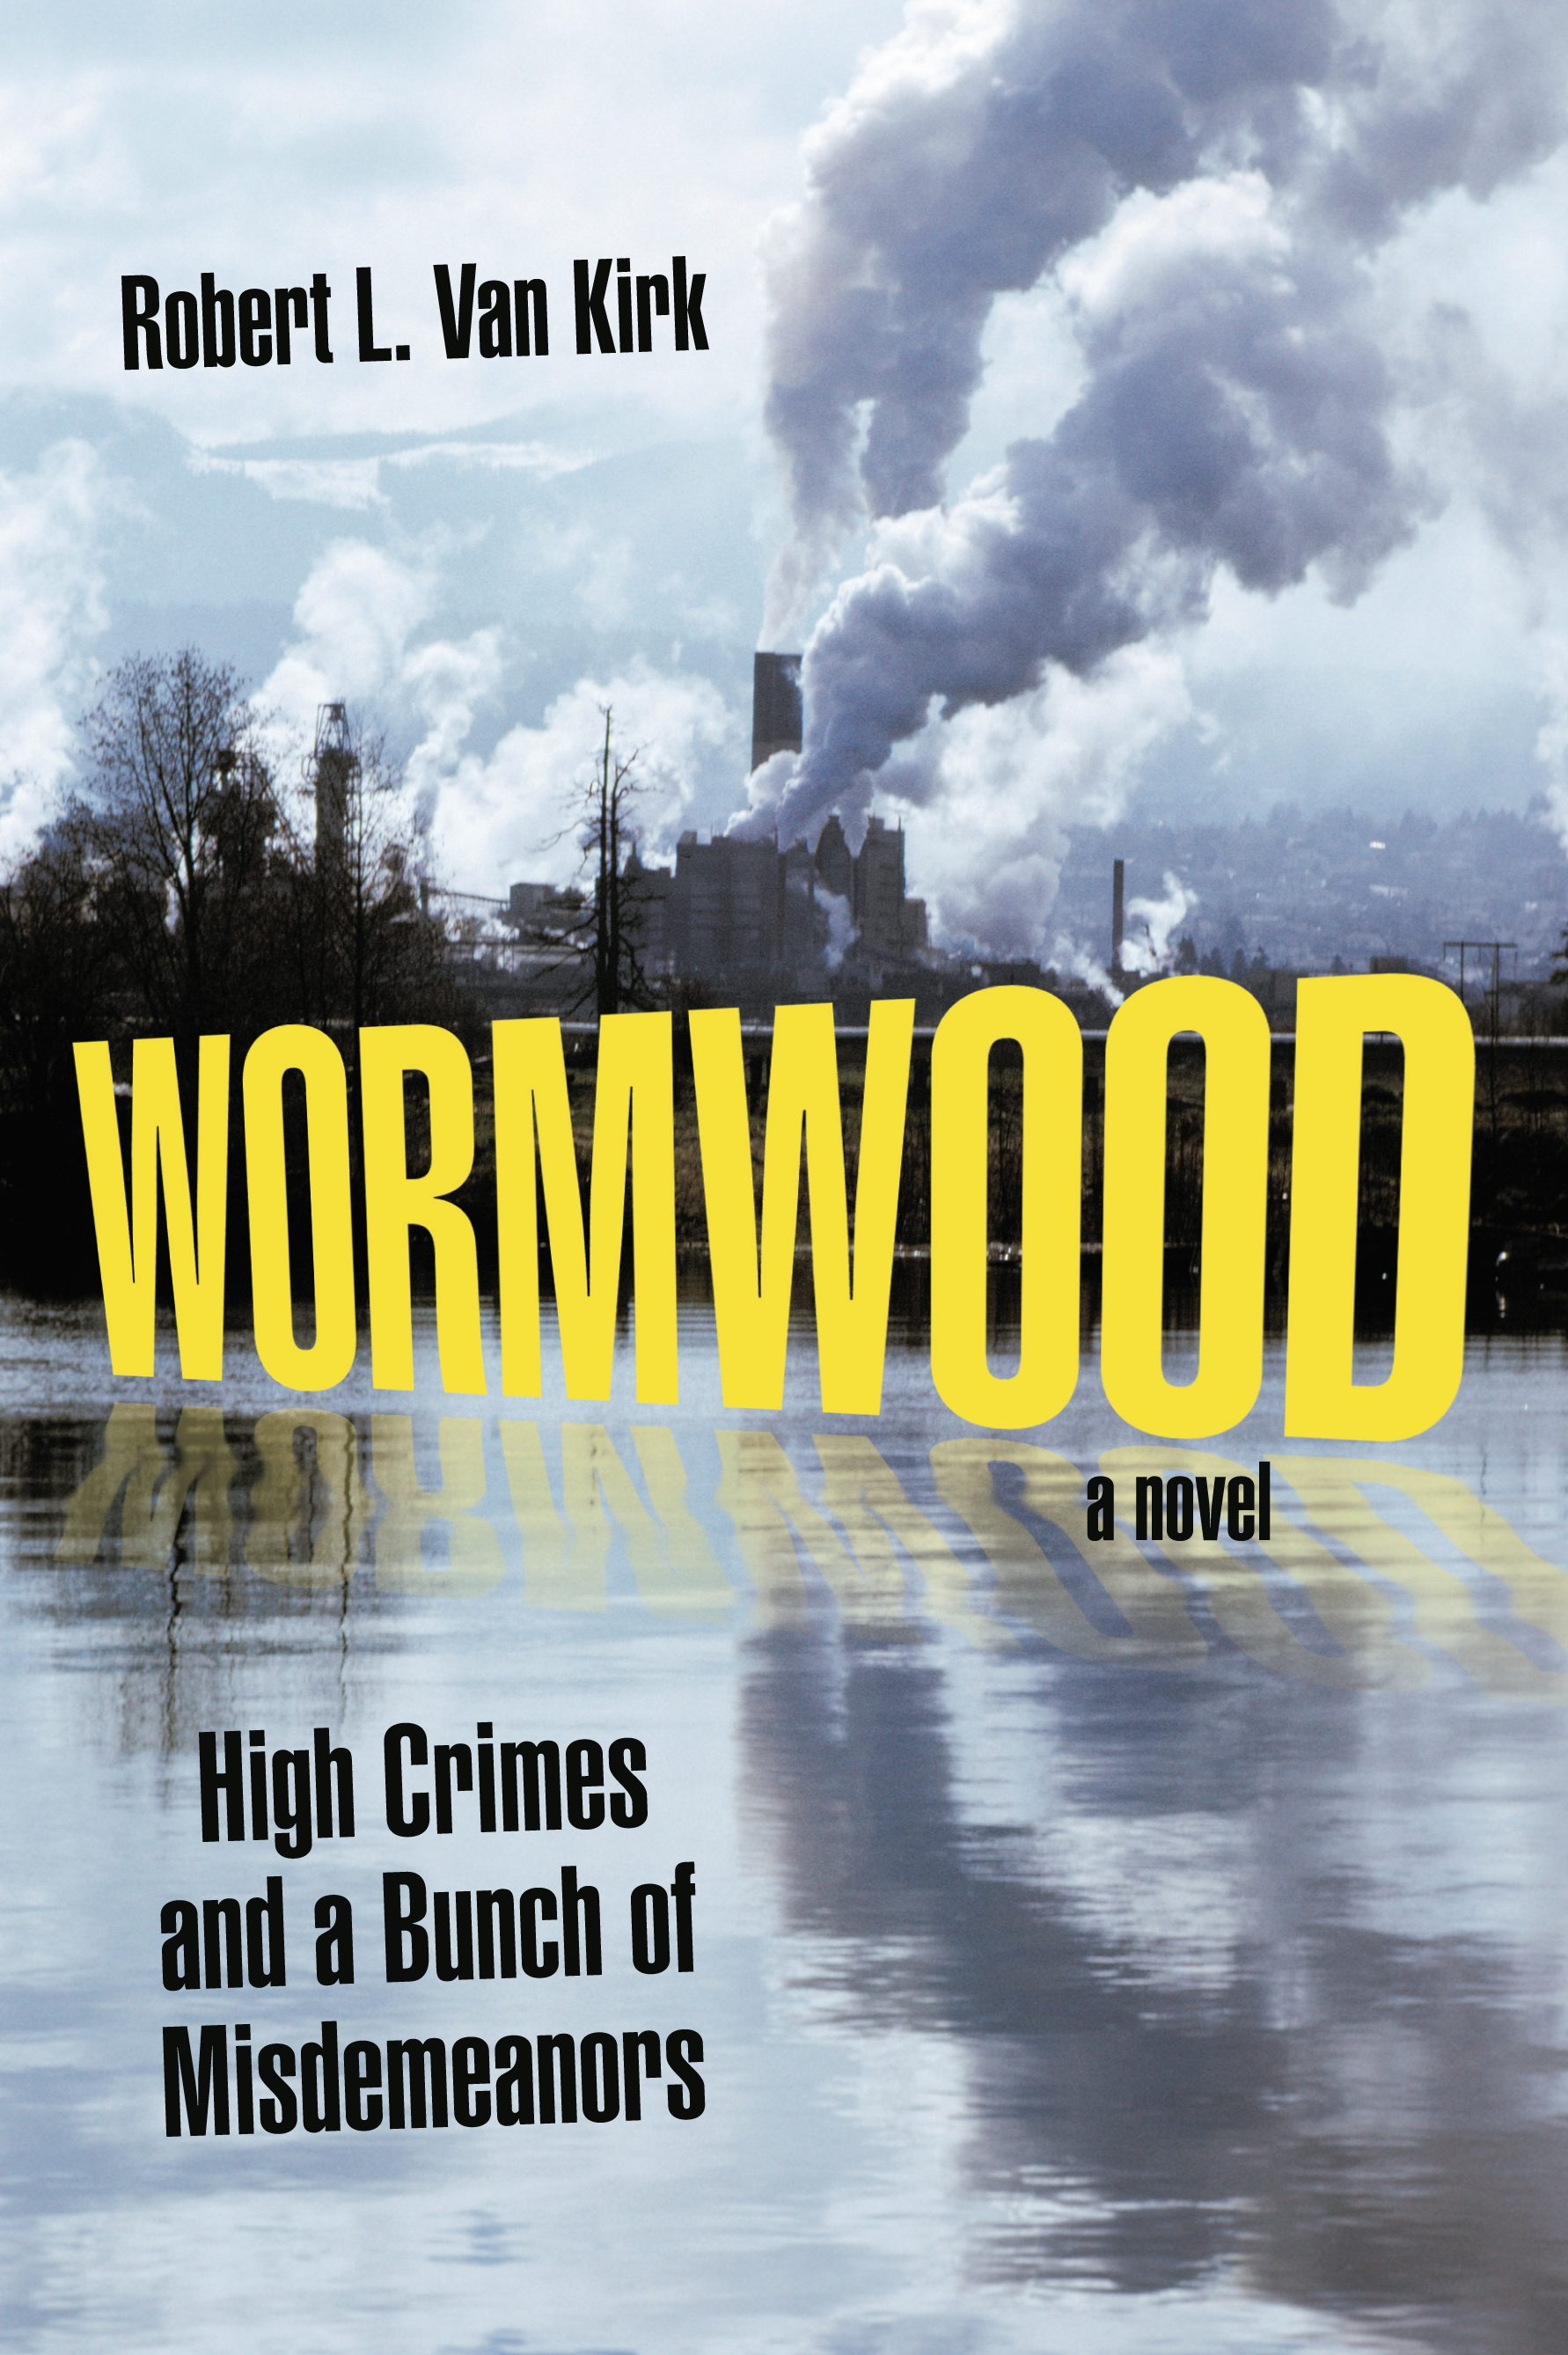 Wormwood High Crimes and a Bunch of Misdemeanors by Robert L. Van Kirk